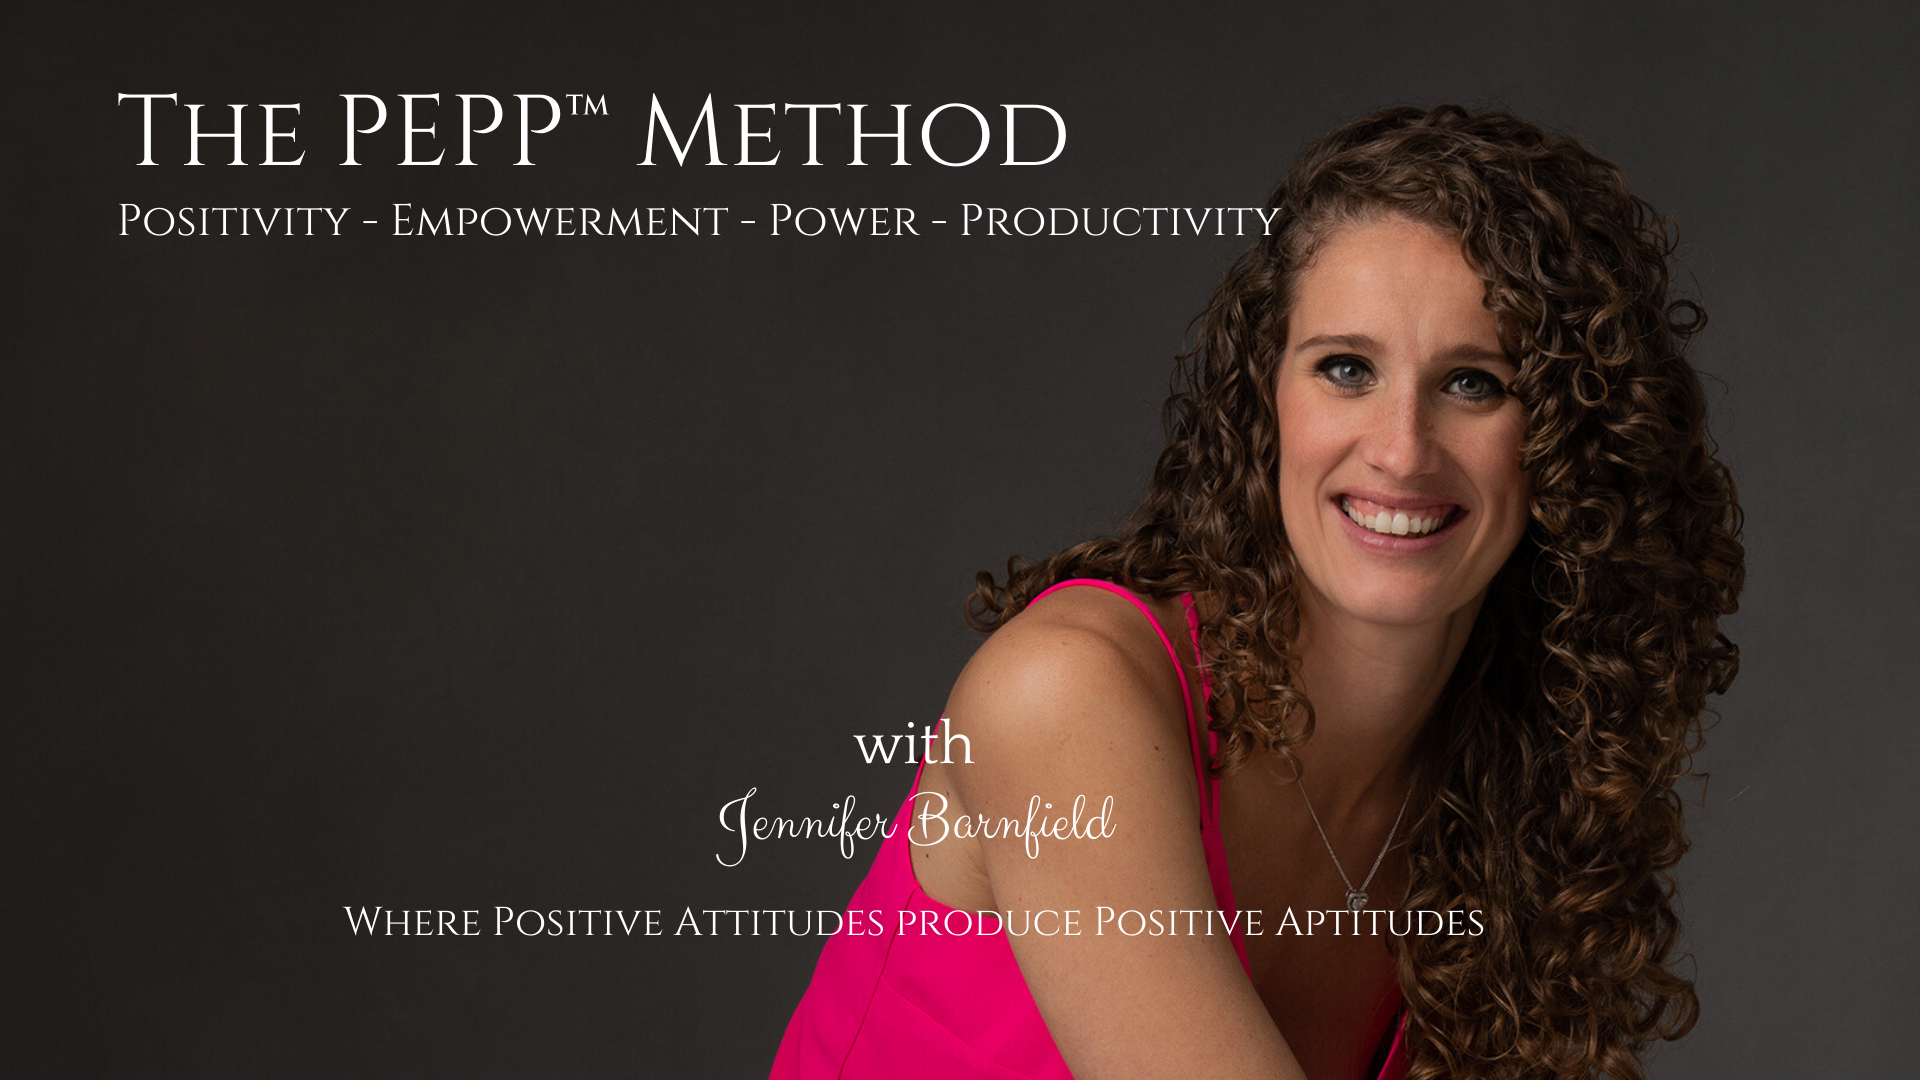 A Positive Attitude Produces A Positive Aptitude - Jennifer Barnfield - The PEPP Method